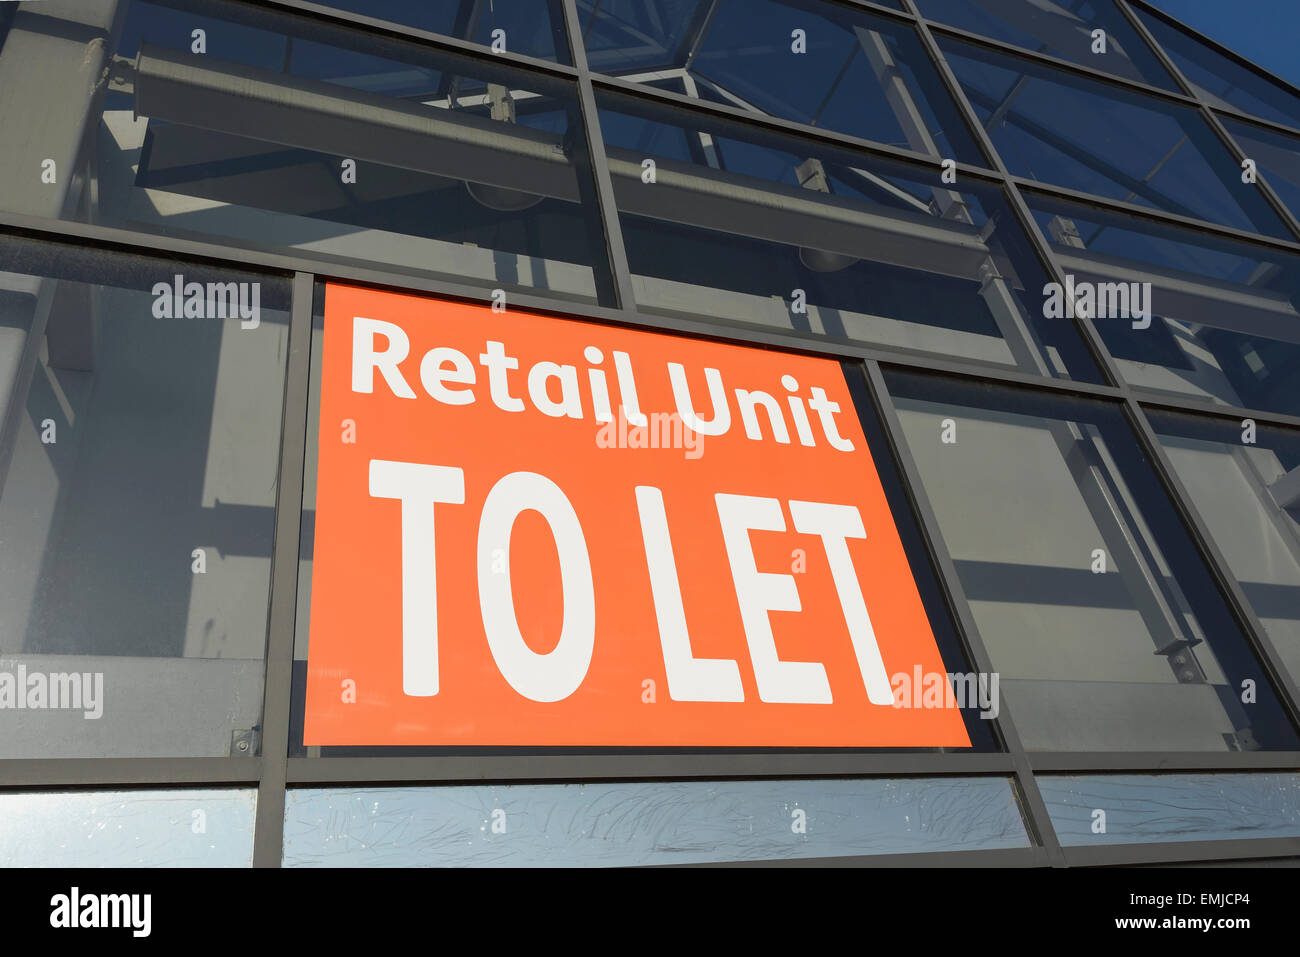 Retail unit to let sign - Stock Image